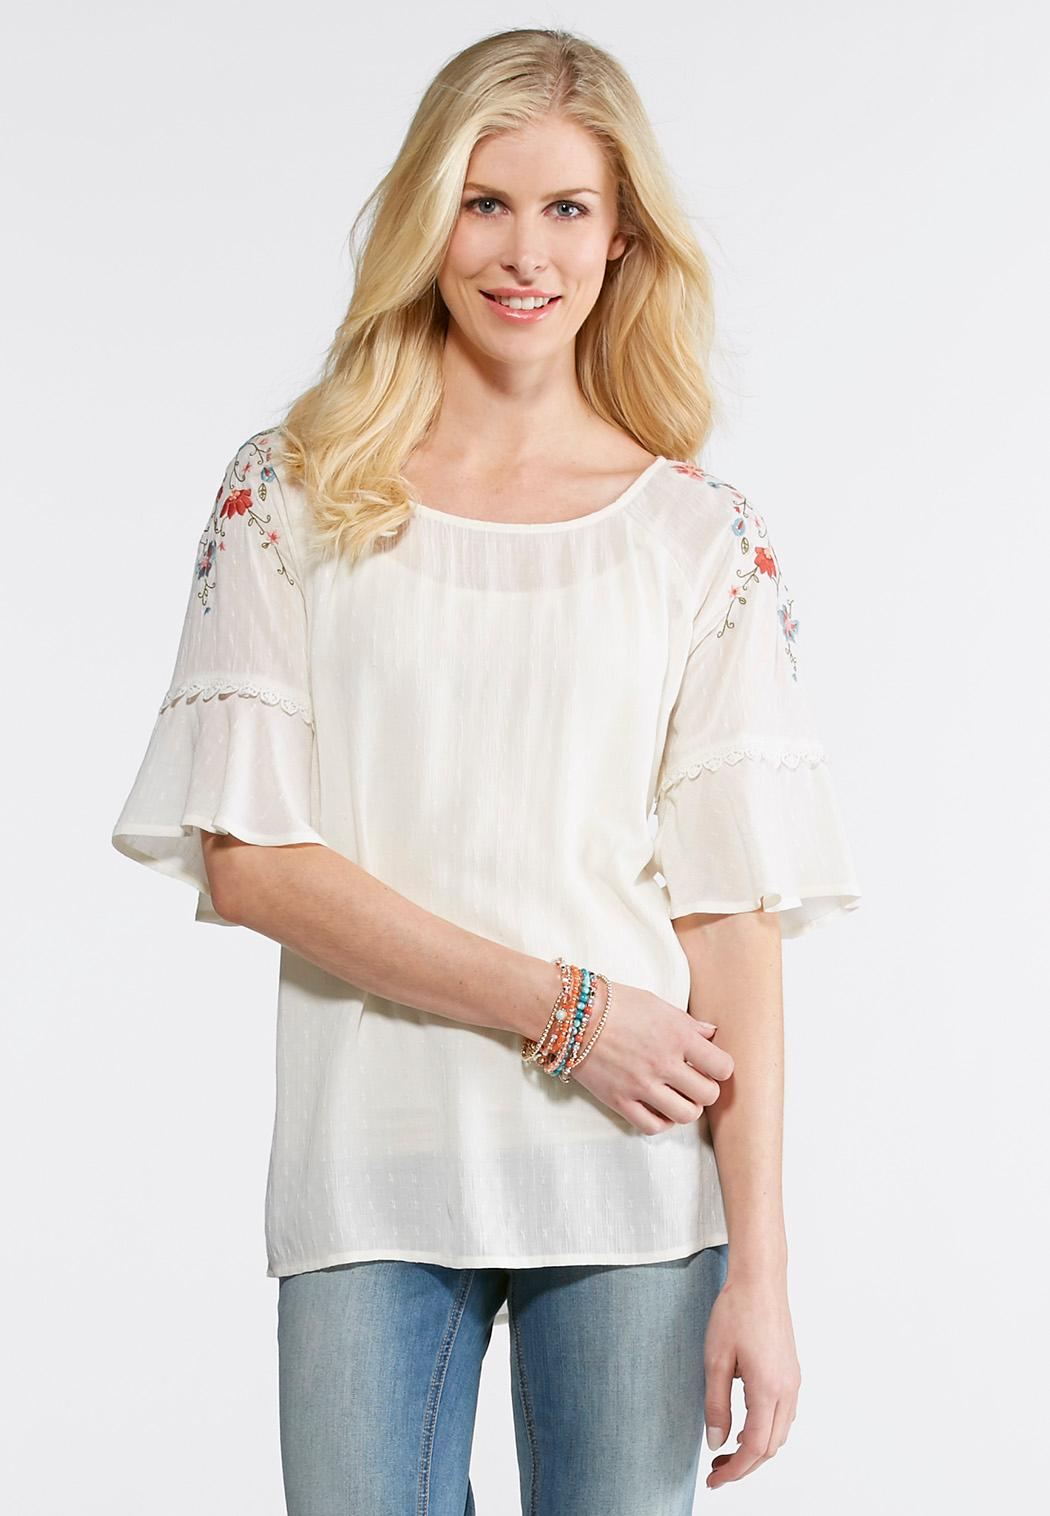 Women's Shirts & Tops Lucky Brand Misty Rose Plus Size Embroidered Boho  Blouse piTeSj